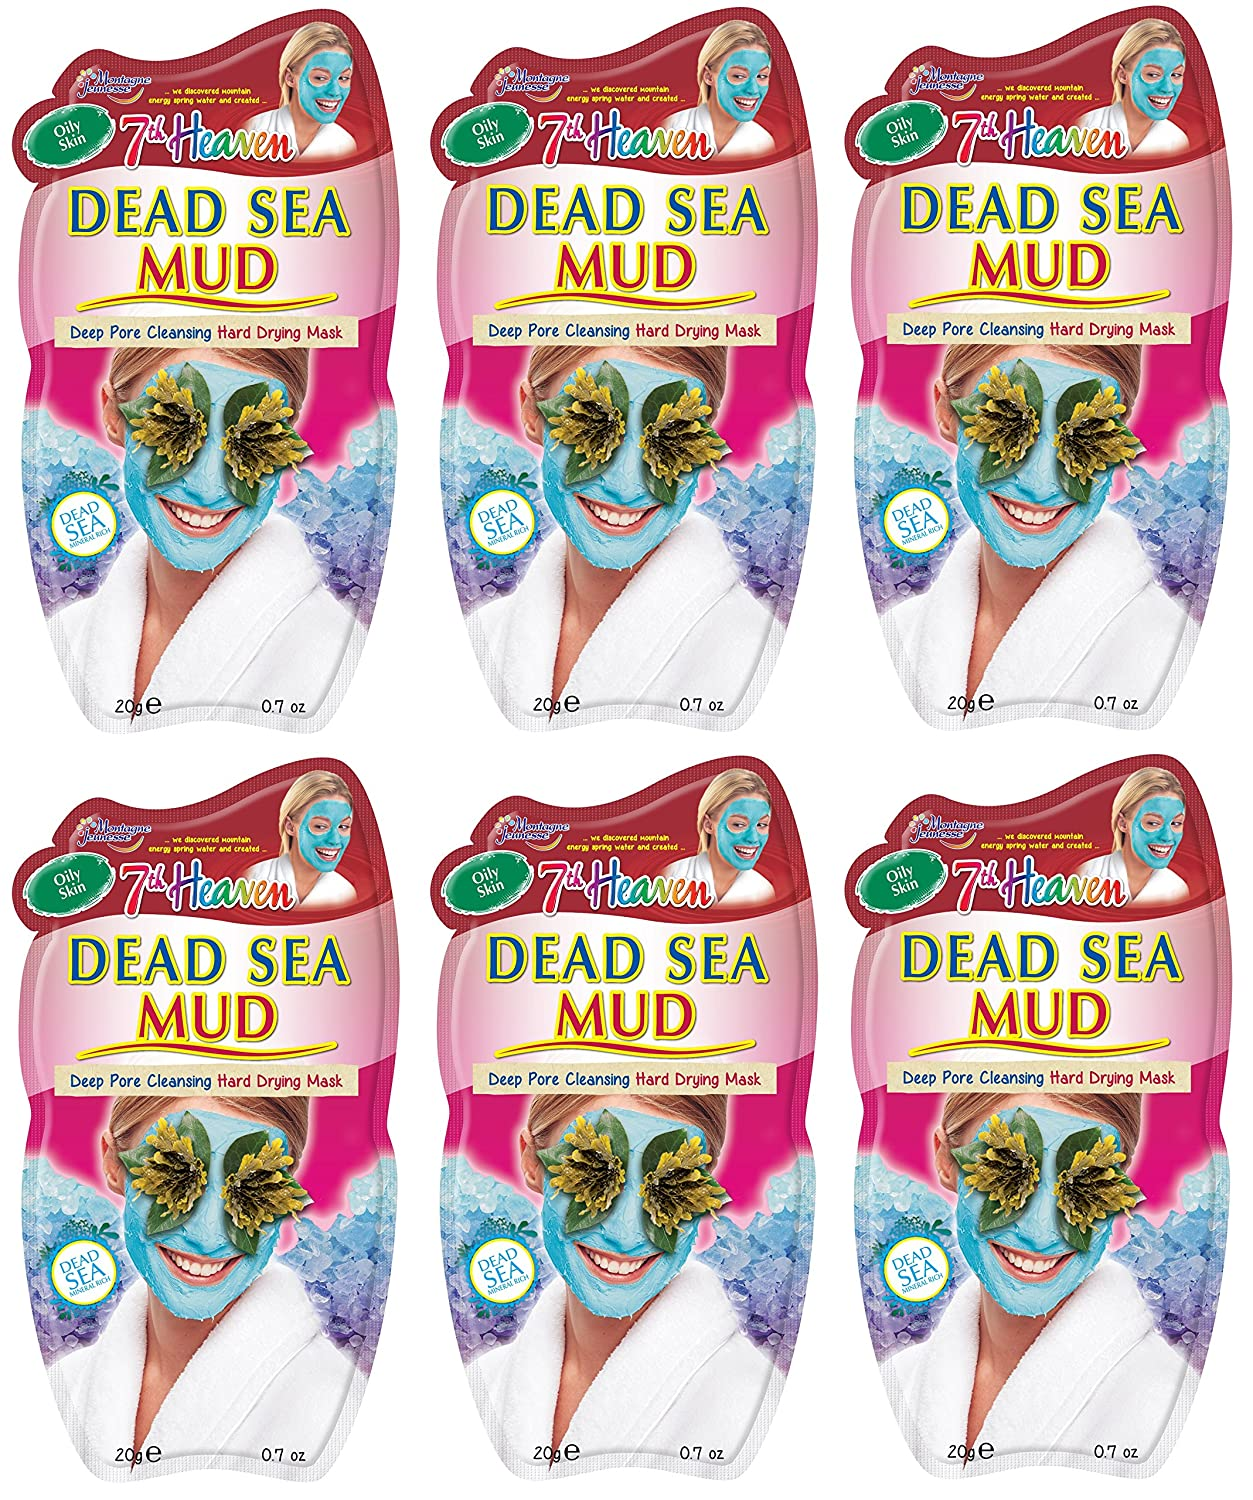 Montagne Jeunesse Dead Sea Mud 20 g Face Masque Sachets - Pack of 6 GroceryCentre GS-B029-A1